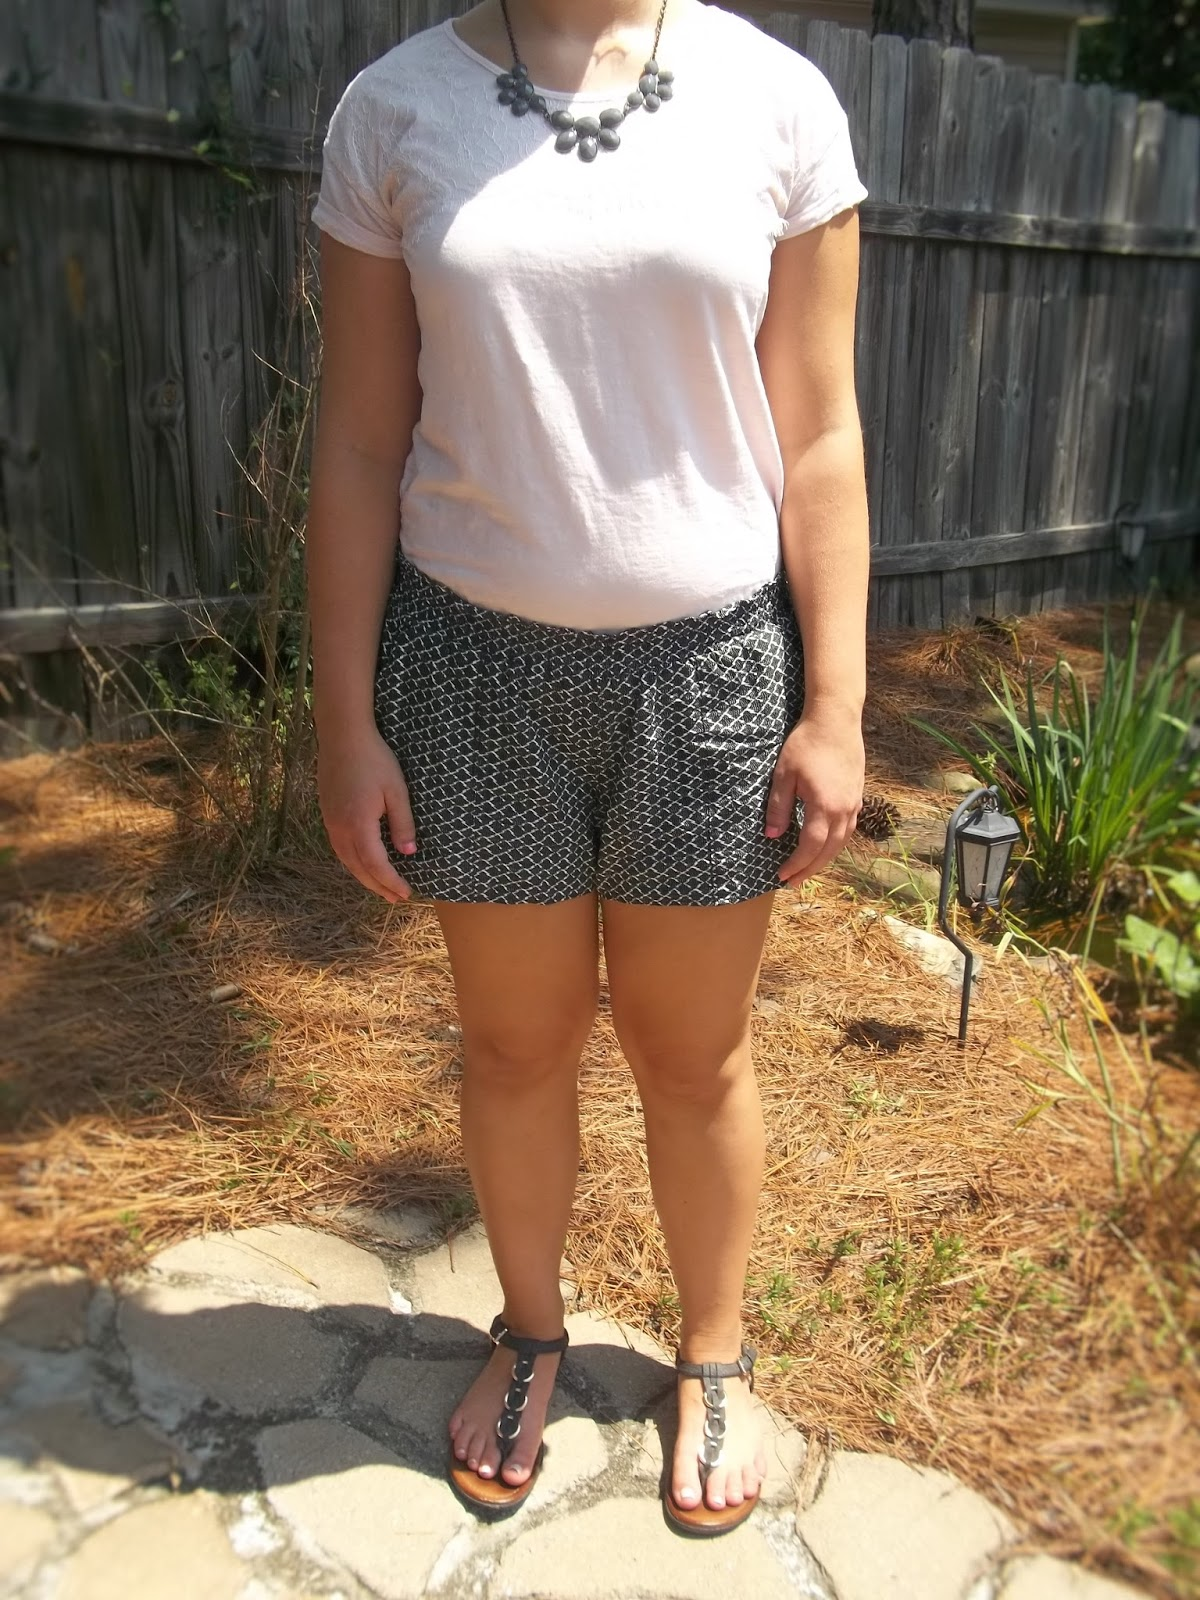 Bows & Clothes: Lace and Soft Shorts